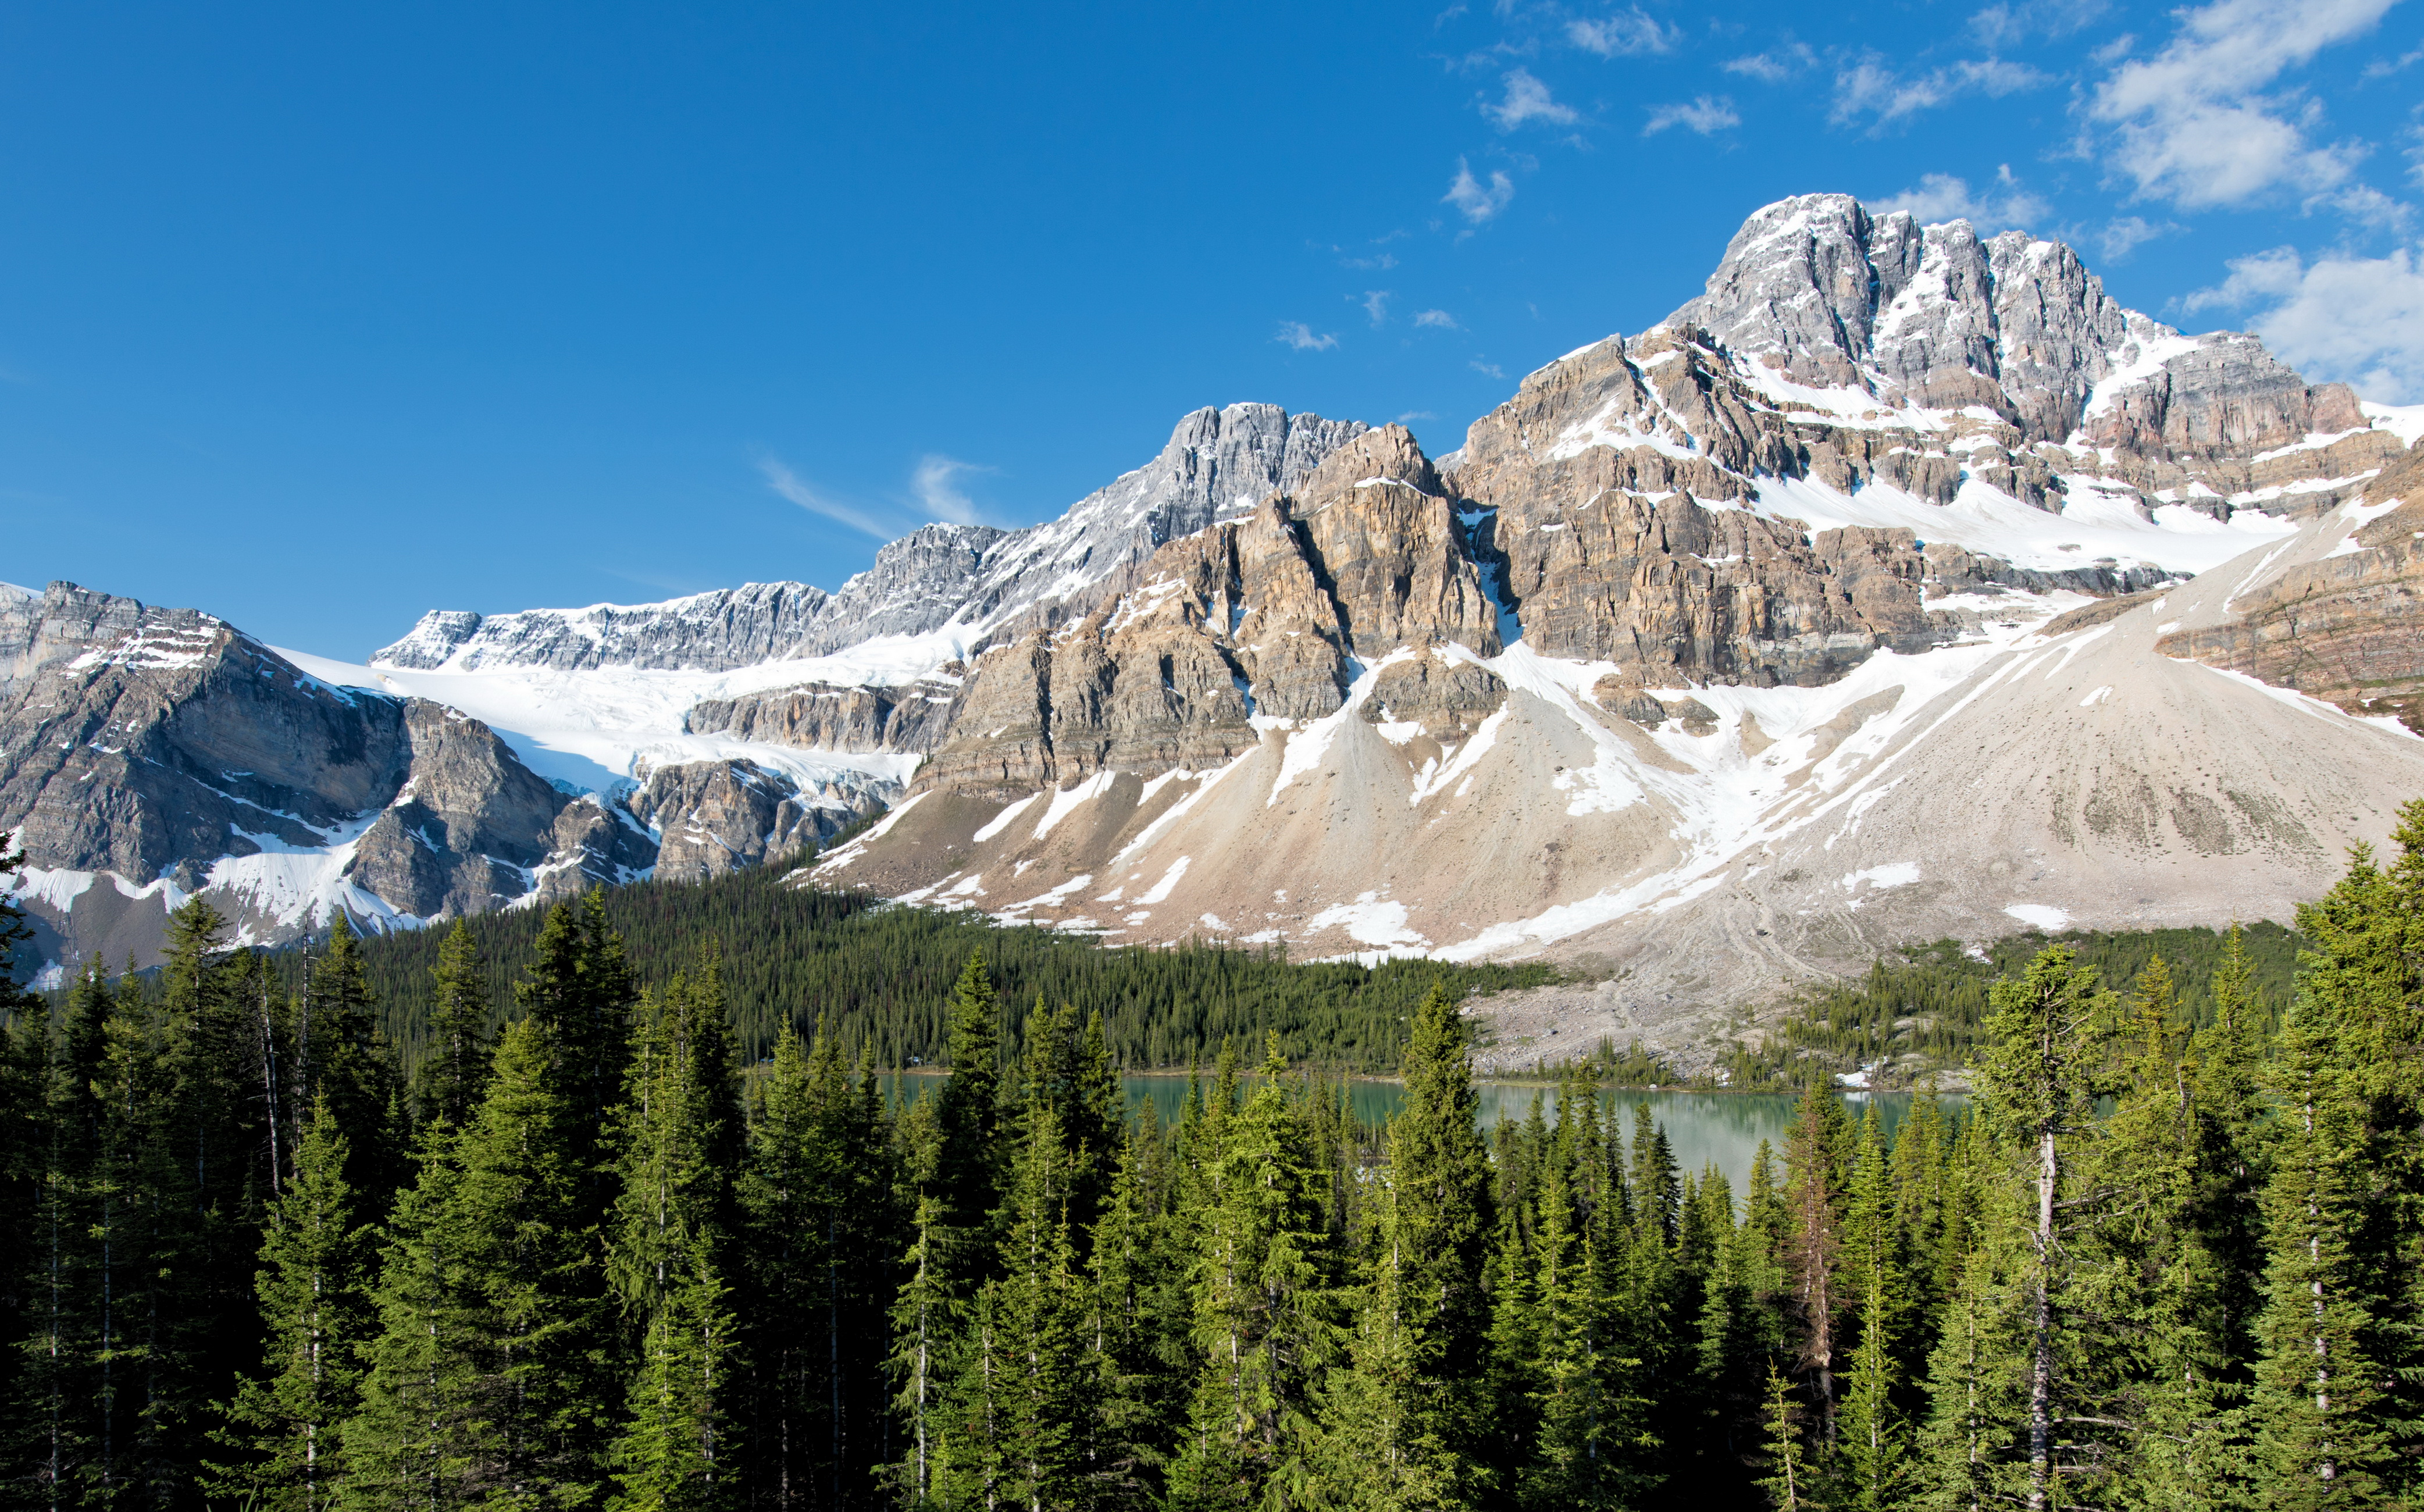 Parks Canada Mountains Scenery Banff Crag Nature wallpaper 4168x2600 4168x2600